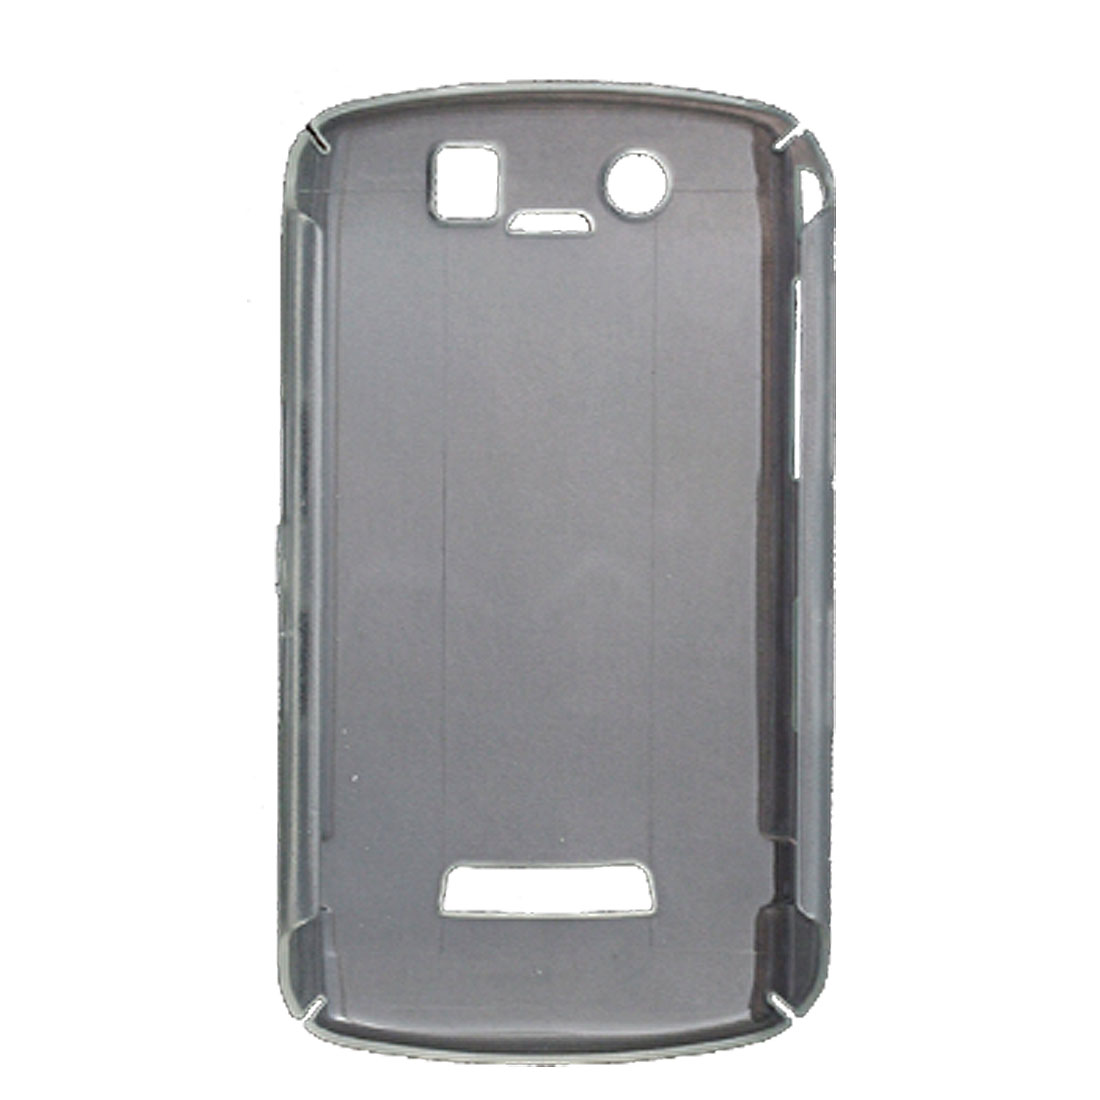 Crystal Plastic Back Case Protector Cover for Blackberry 9500